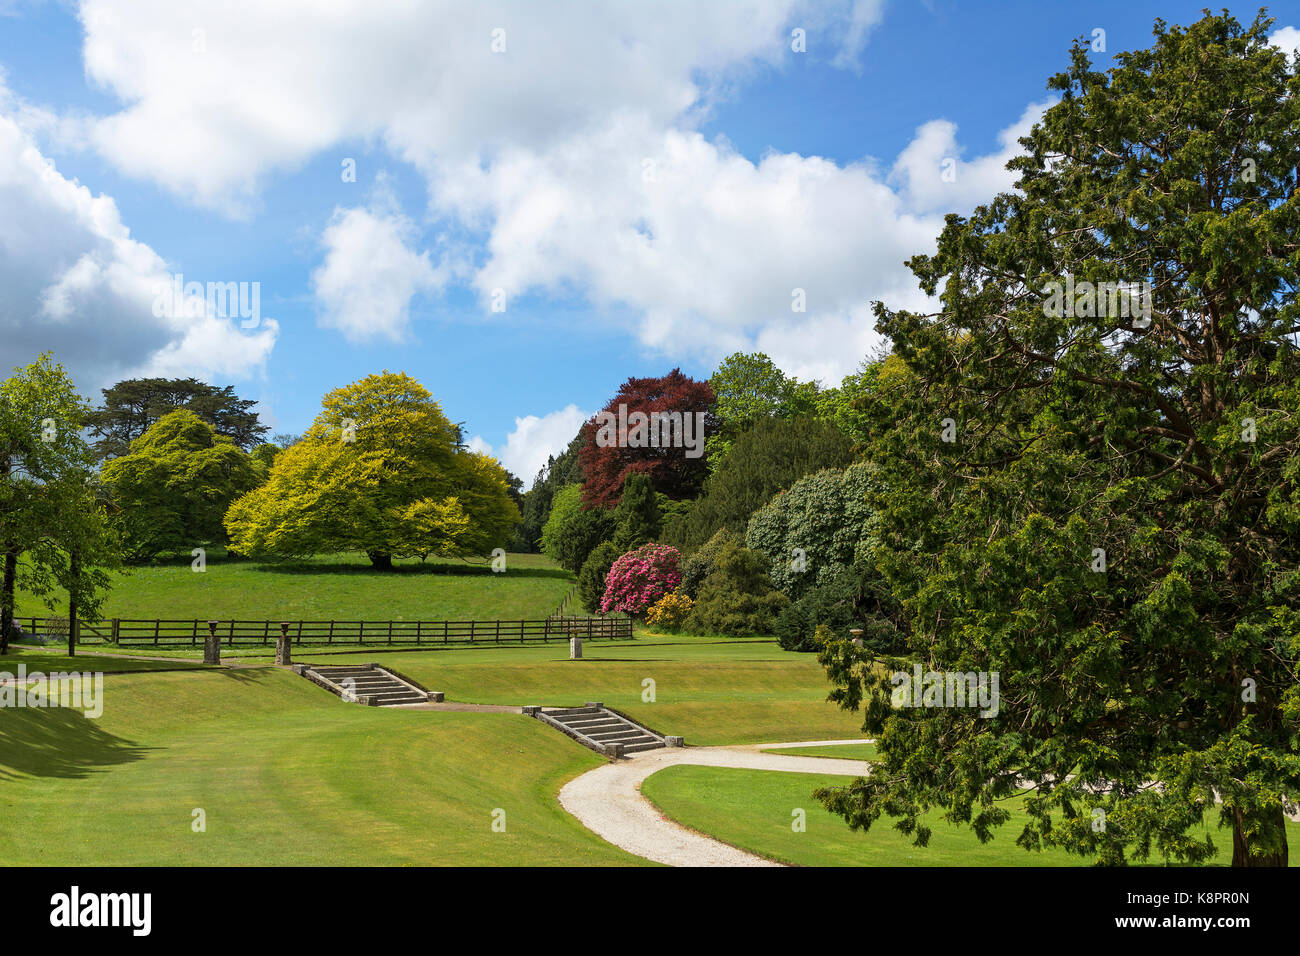 a classic country garden landscape at pencarrow house near bodmin in cornwall, england, uk. - Stock Image